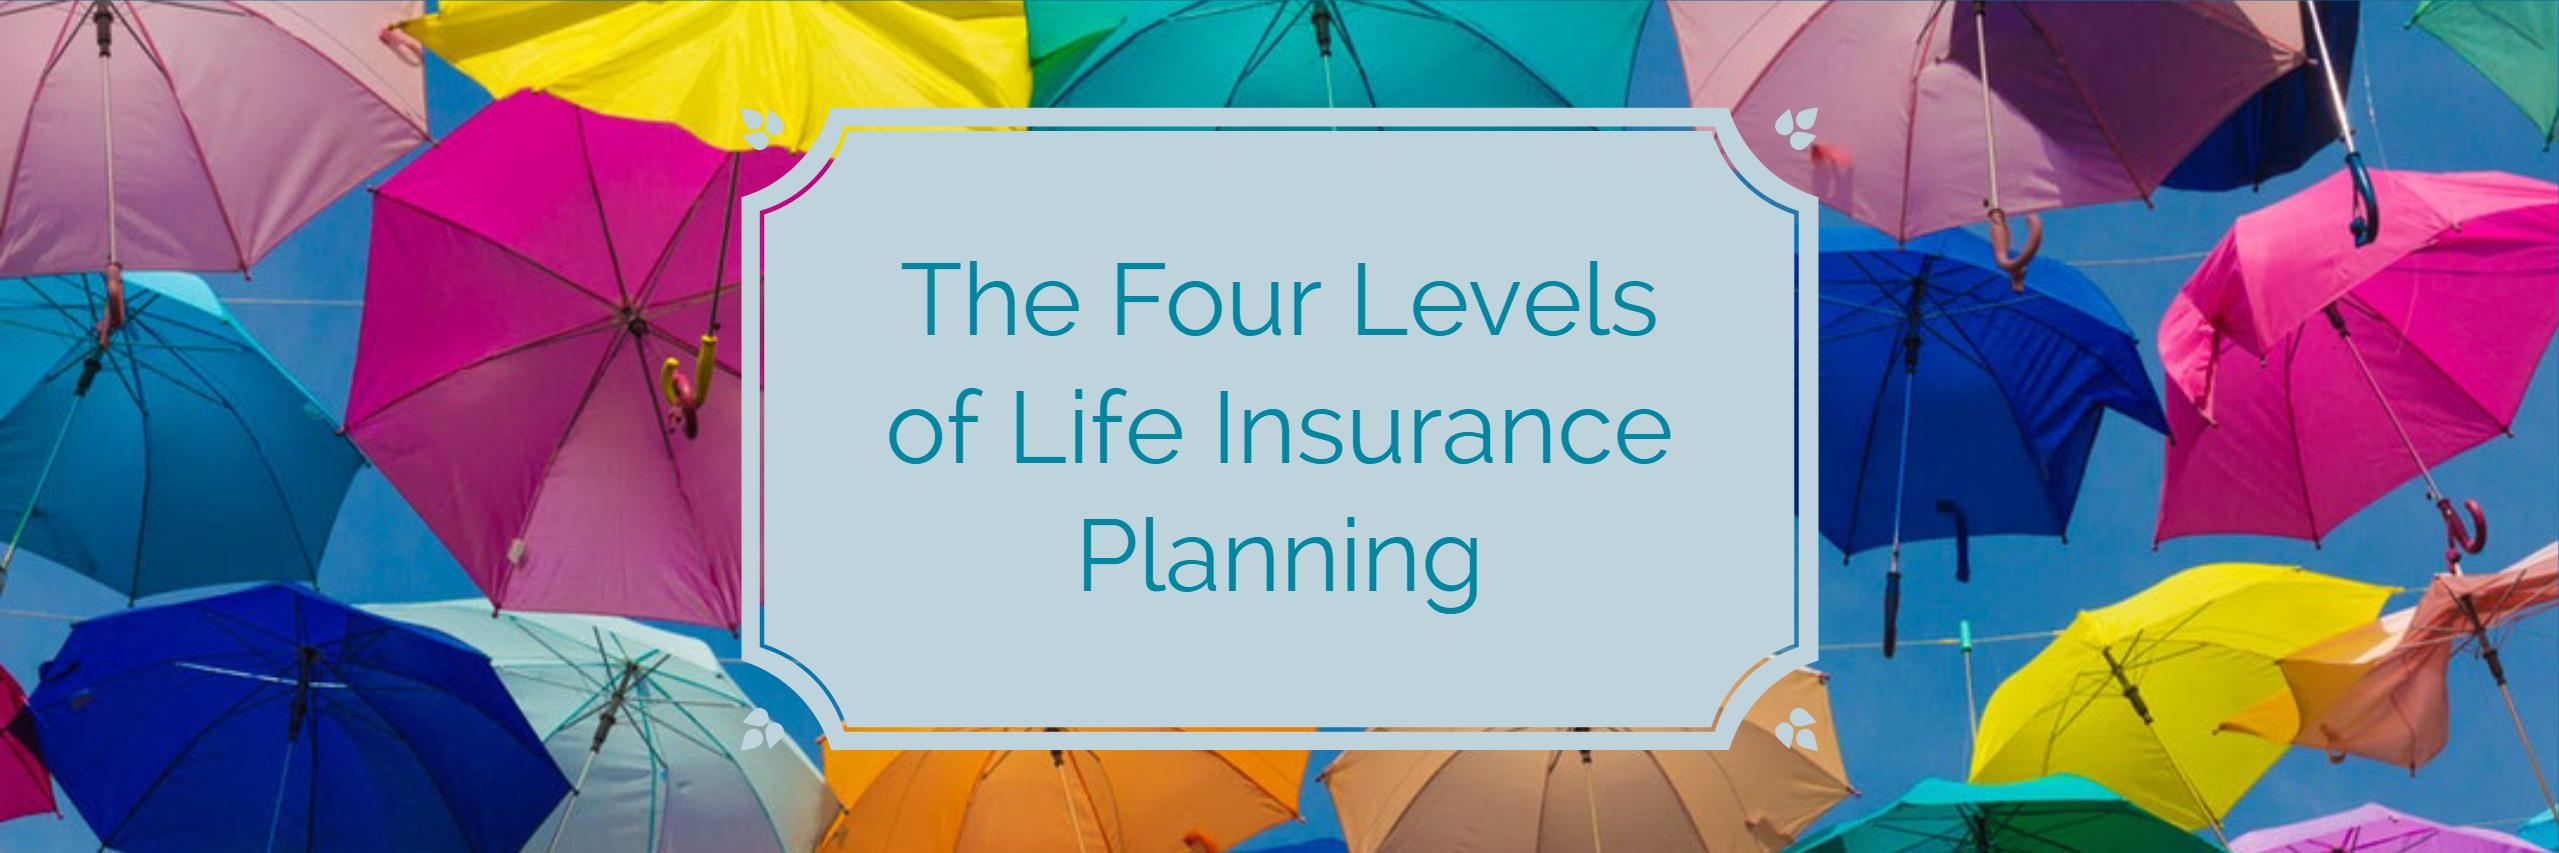 The Four Levels of Life Insurance Planning Thumbnail